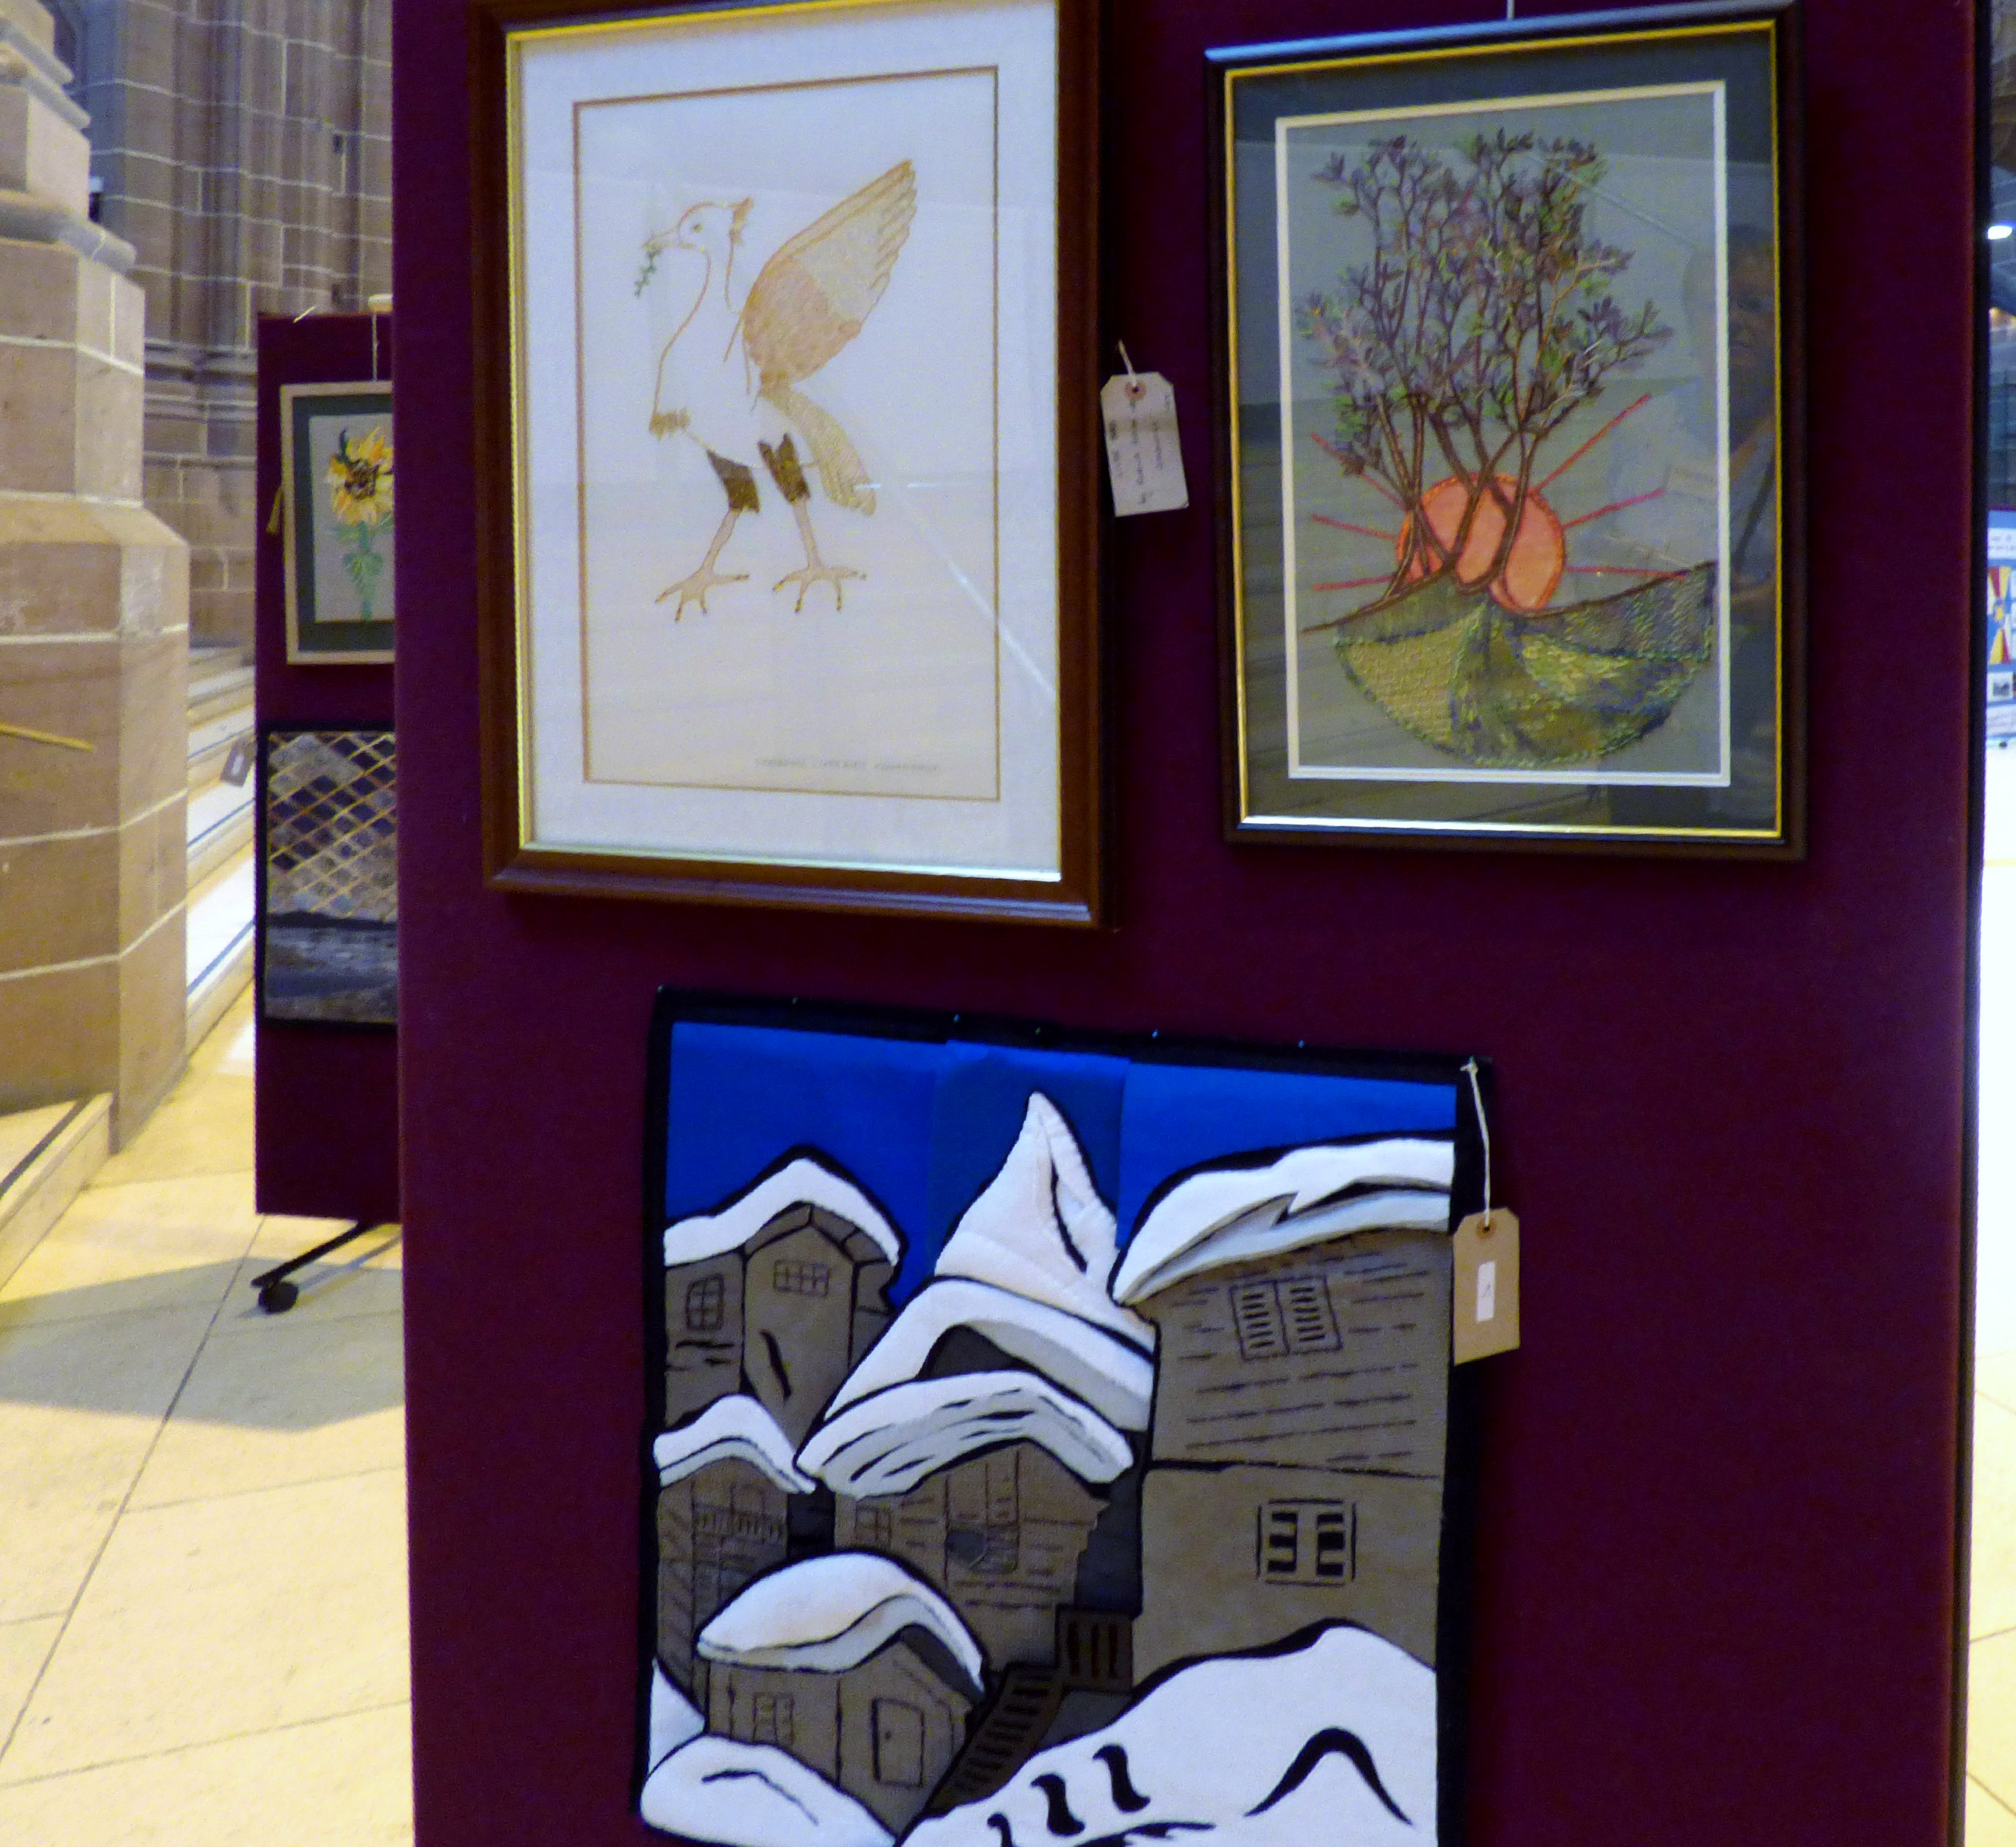 LIVER BIRD by Ruby Porter, CAPABILITY BROWN by David Peglar and SECHAUD'S CORNER by Barbara Reece at 60 Glorious Years exhibition 2016